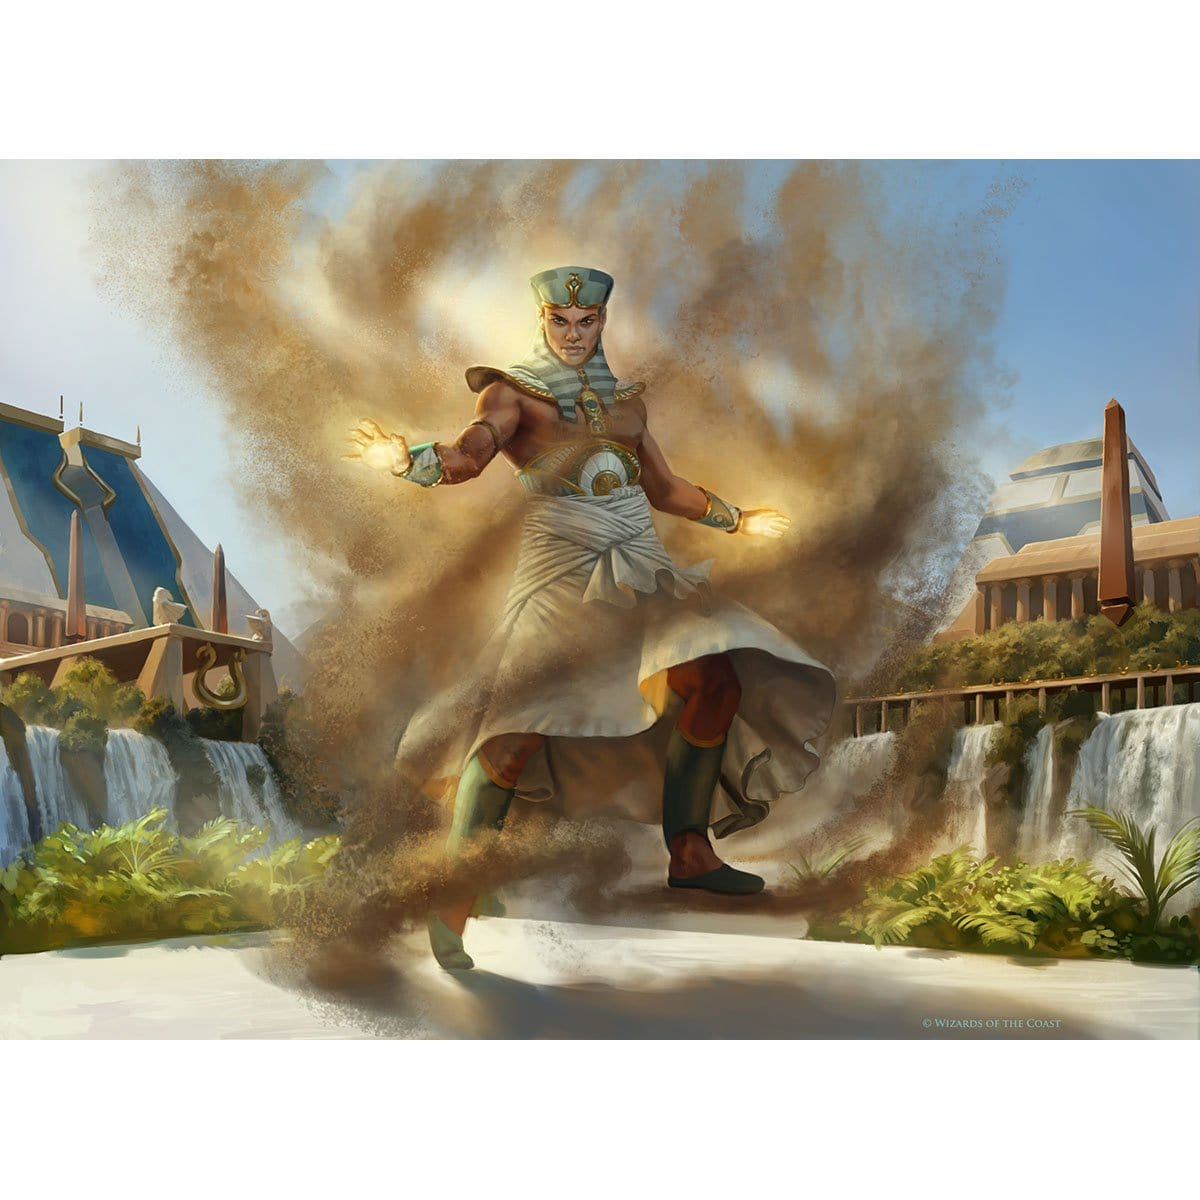 Gust Walker Print - Print - Original Magic Art - Accessories for Magic the Gathering and other card games